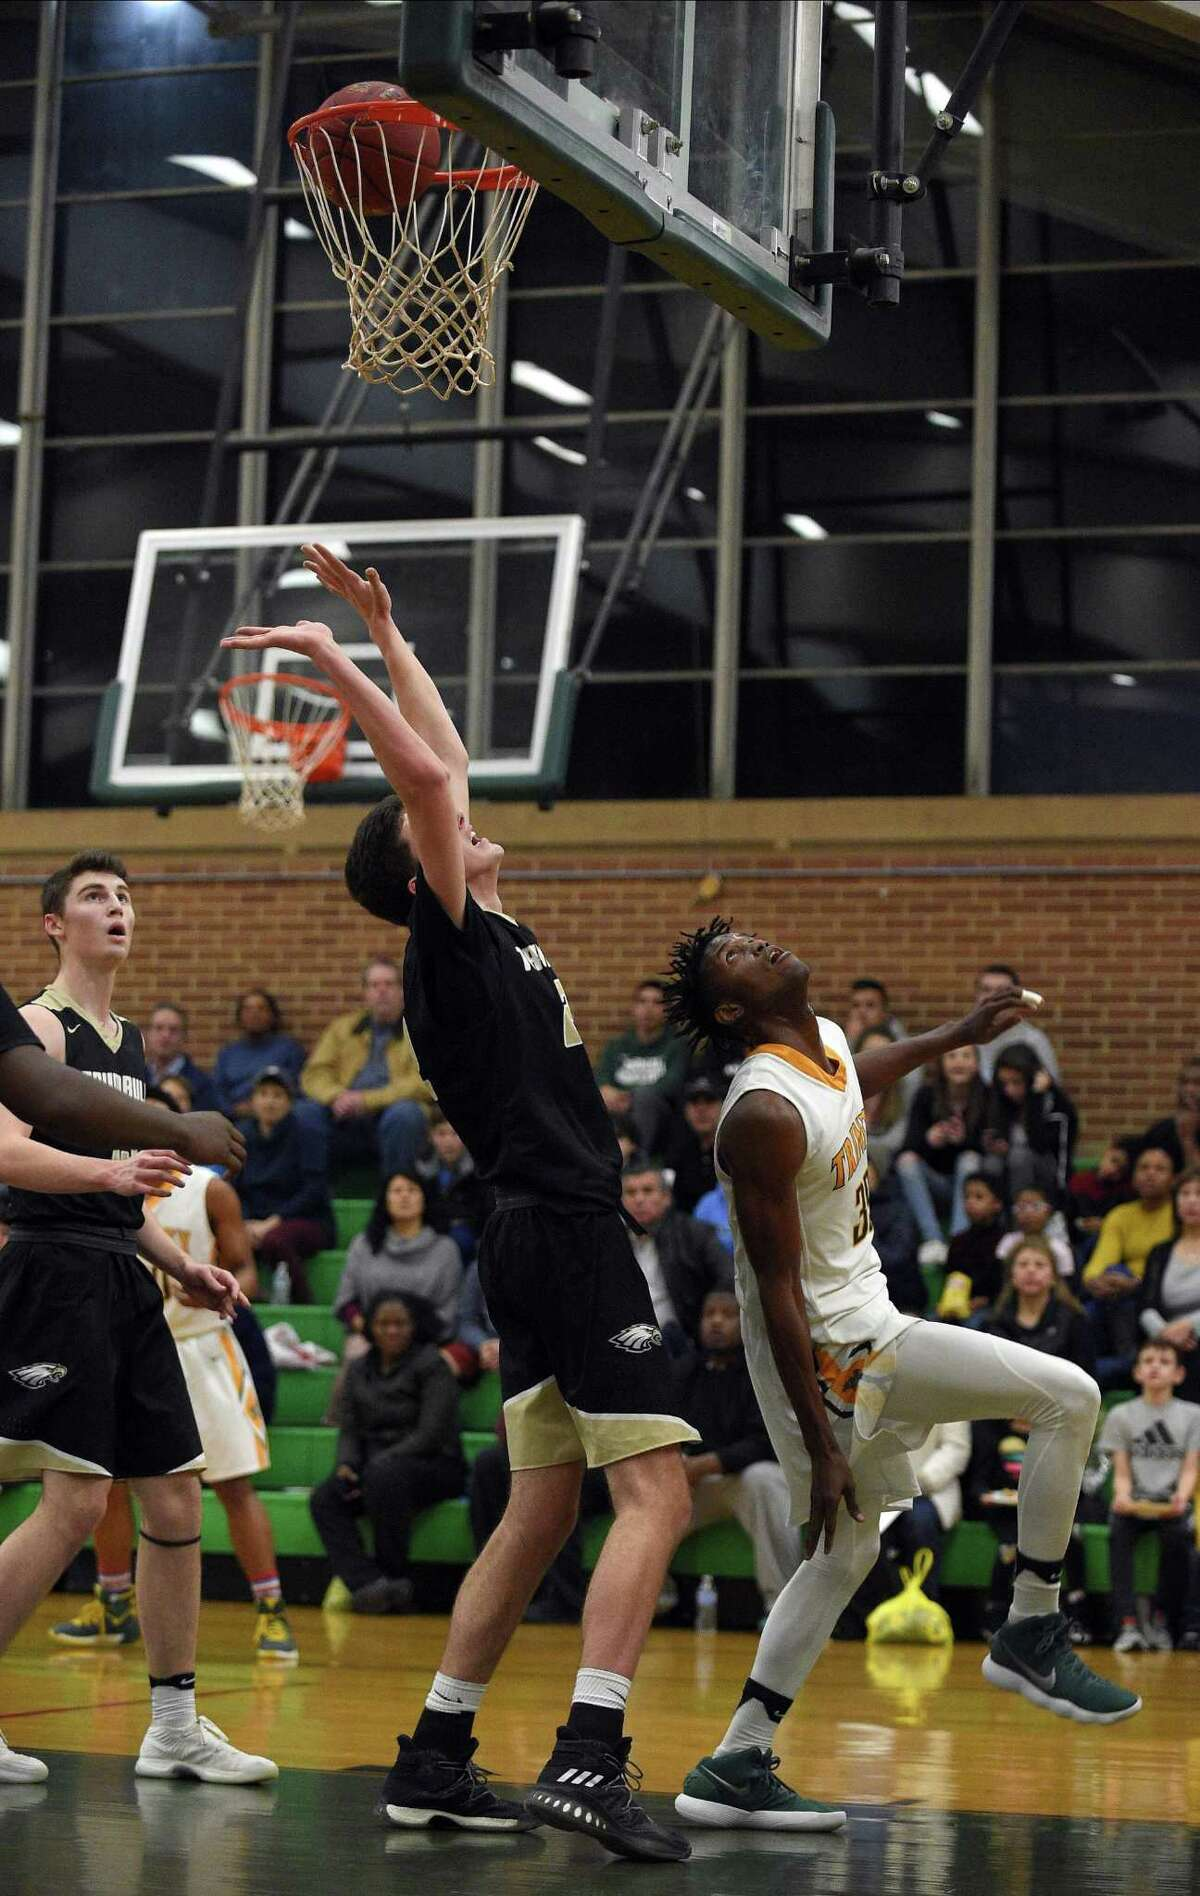 Trinity Catholic's Dimitry Moise (35) watches as his 1,000th carreer point basket fall through the hoop during an FCIAC Boys Basketball game against Trumbull at Trinity Catholic High School on Wednesday, Feb. 14, 2018 in Stamford, Connecticut. Fellow teammate Contavio Dutreil also scored his 1,000th career point.